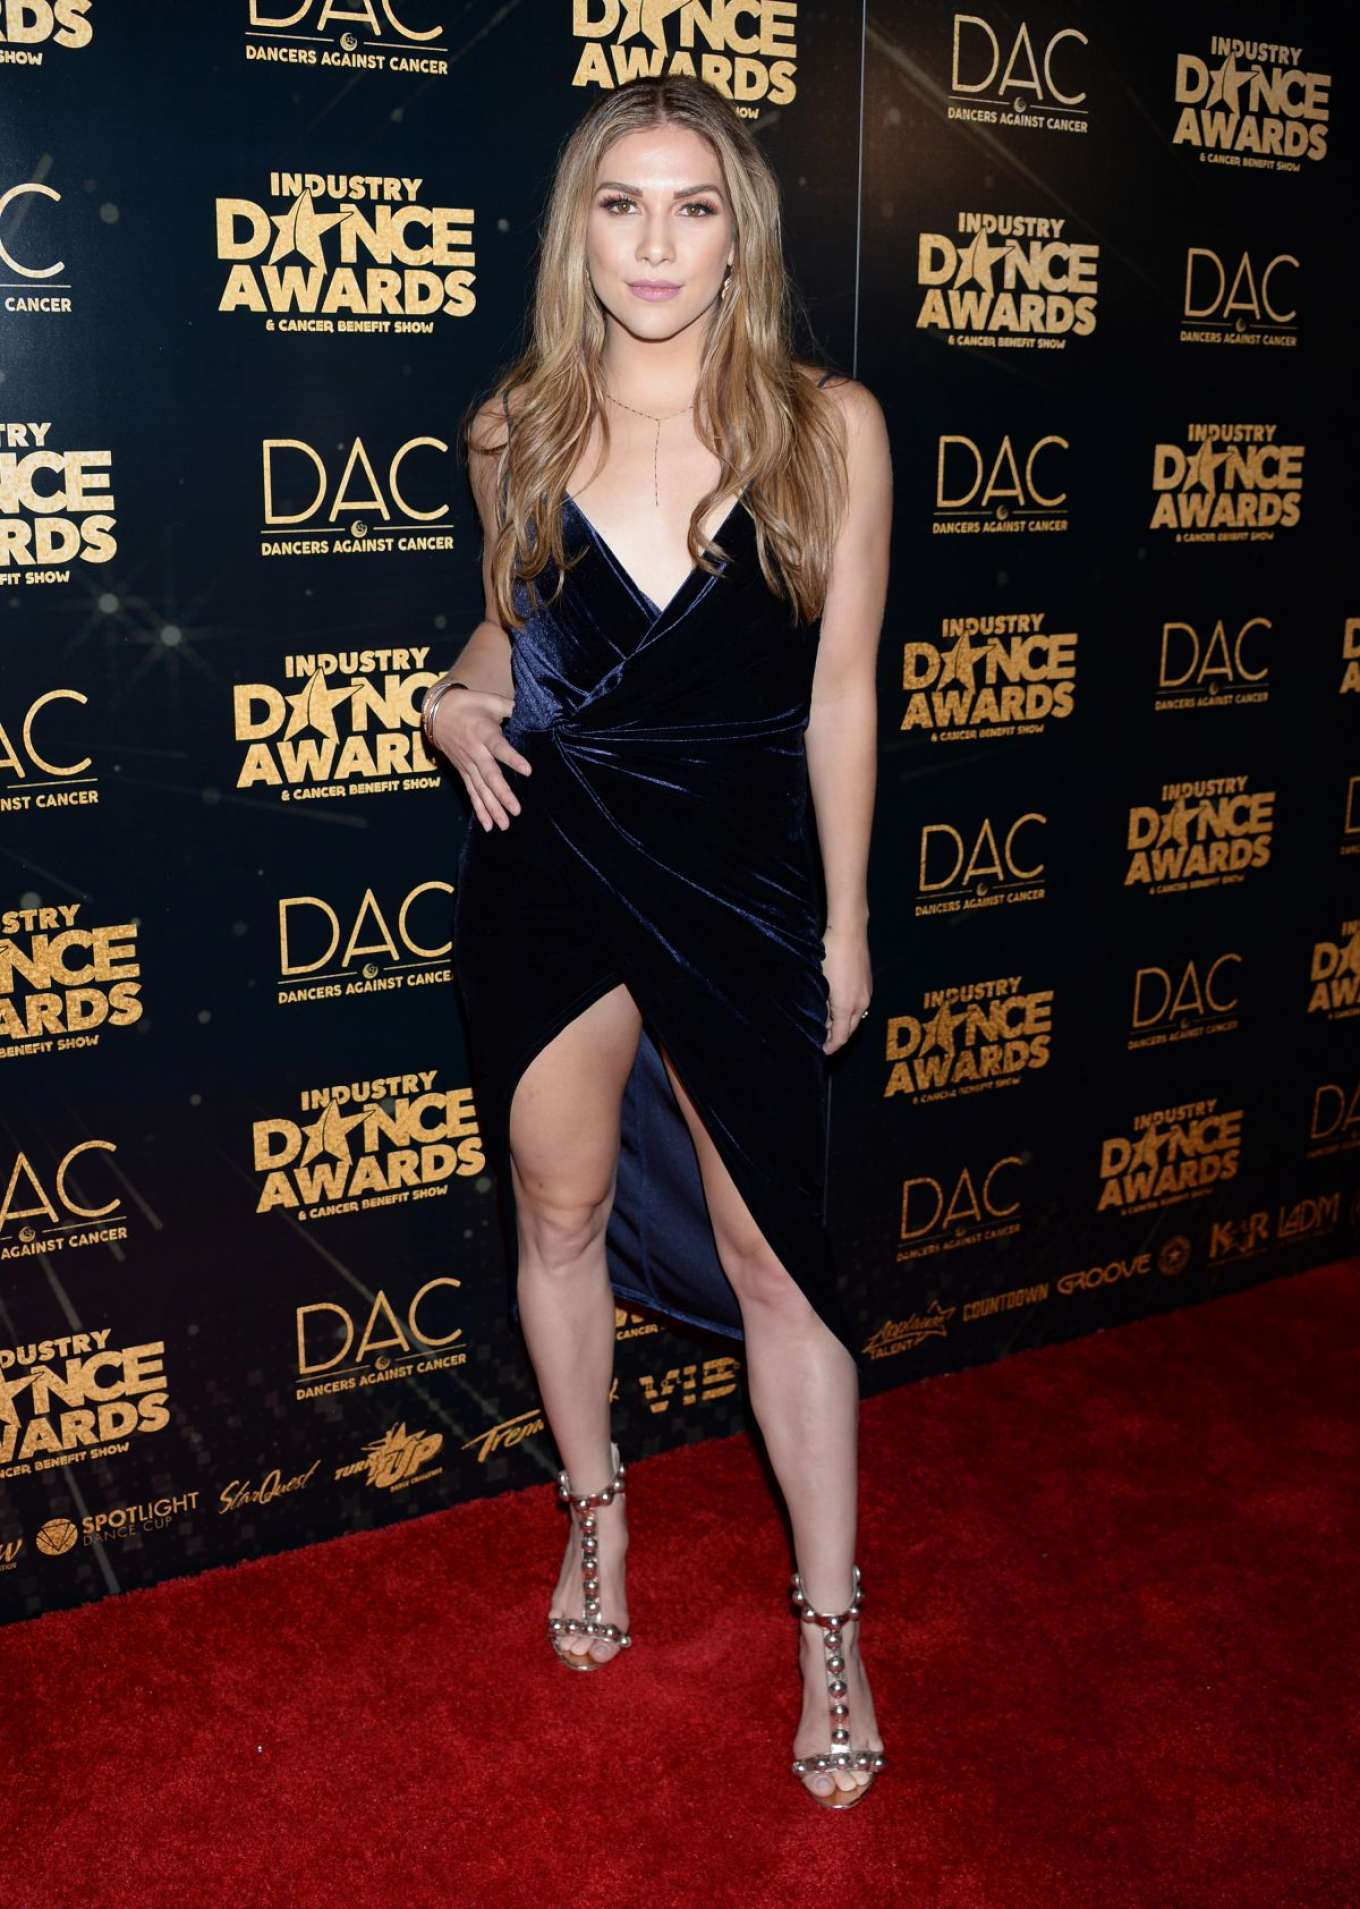 Allison Holker - 2018 Industry Dance Awards in Hollywood